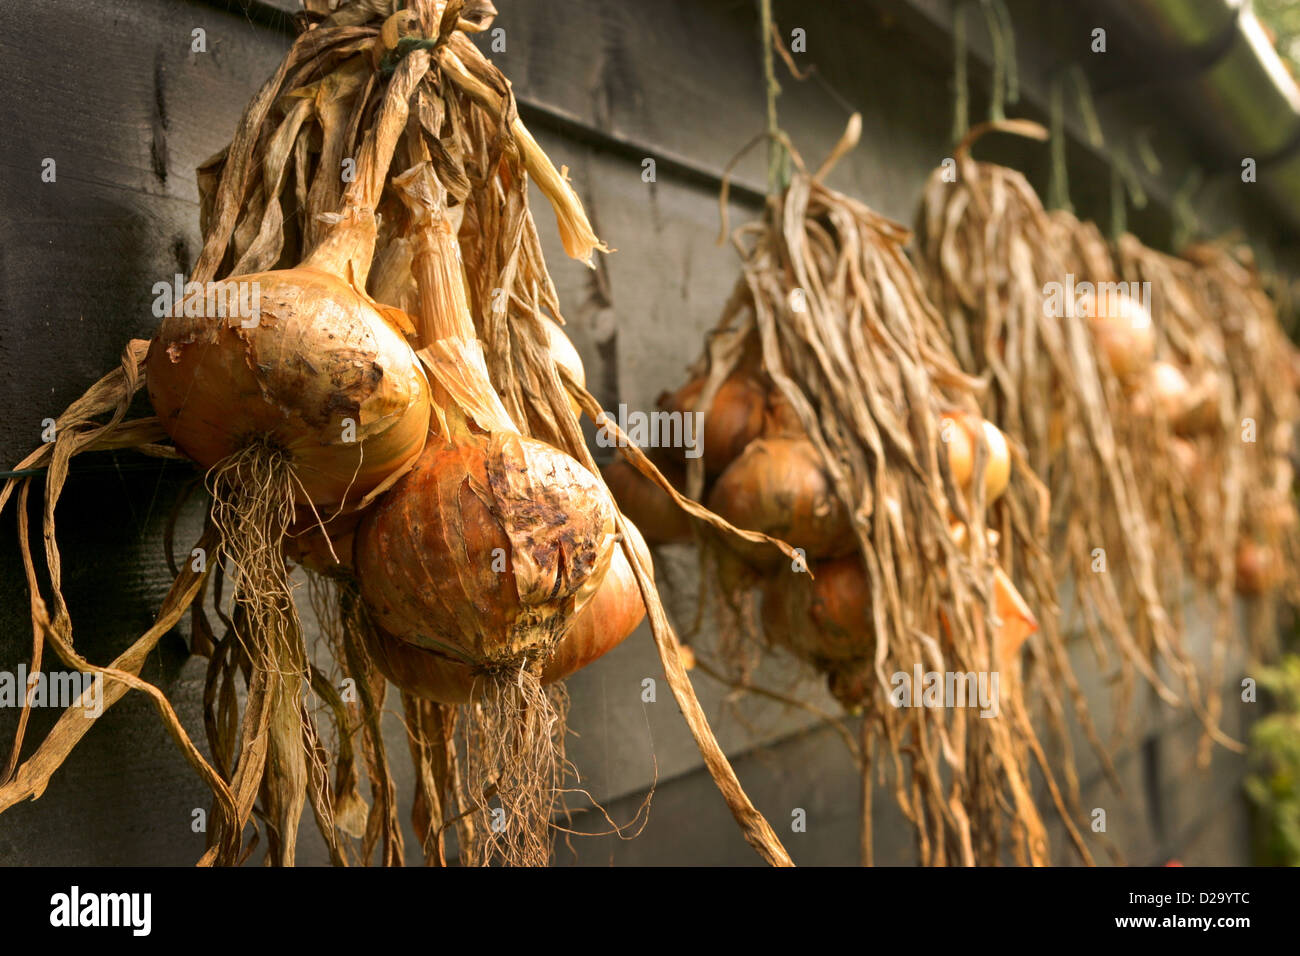 String of Onions hanging against the side of a shed - Stock Image